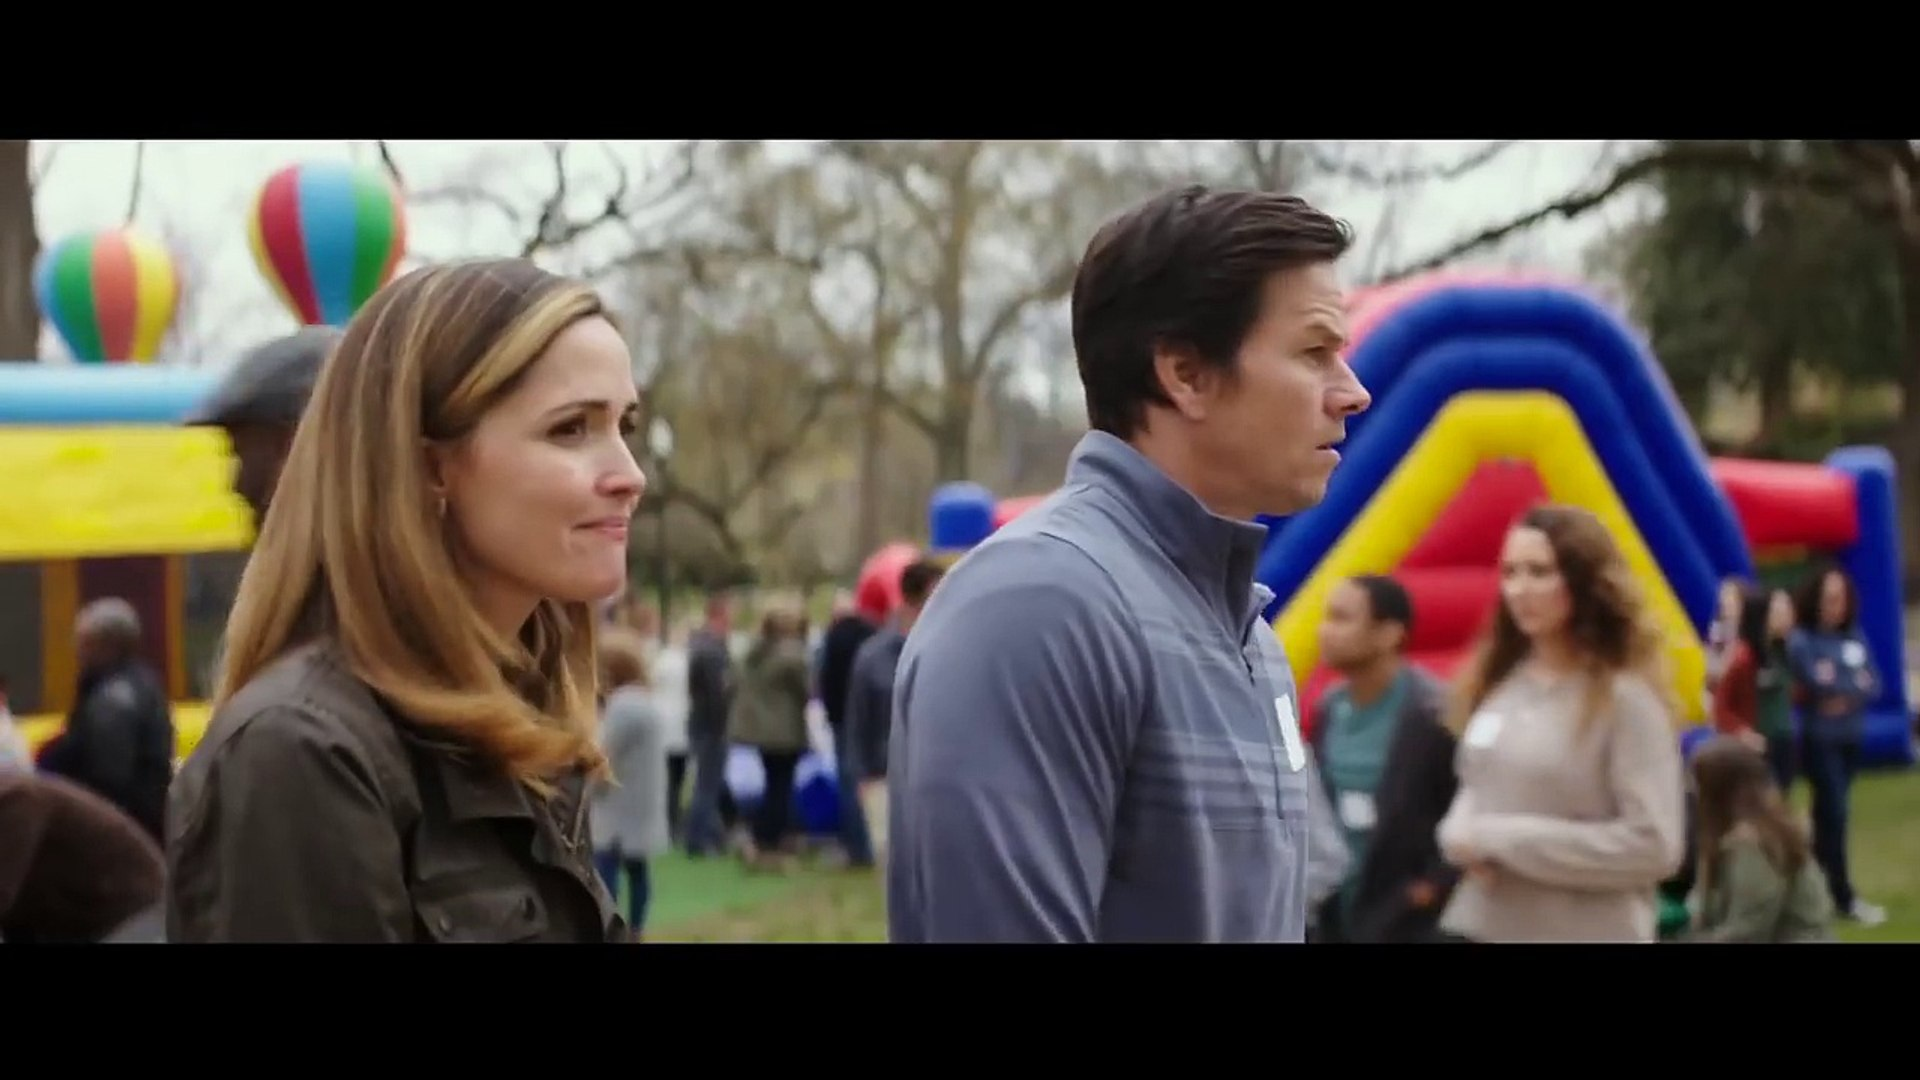 Instant Family Trailer - 1 (2018) _ Movieclips Trailers ( 720 X 1280 )